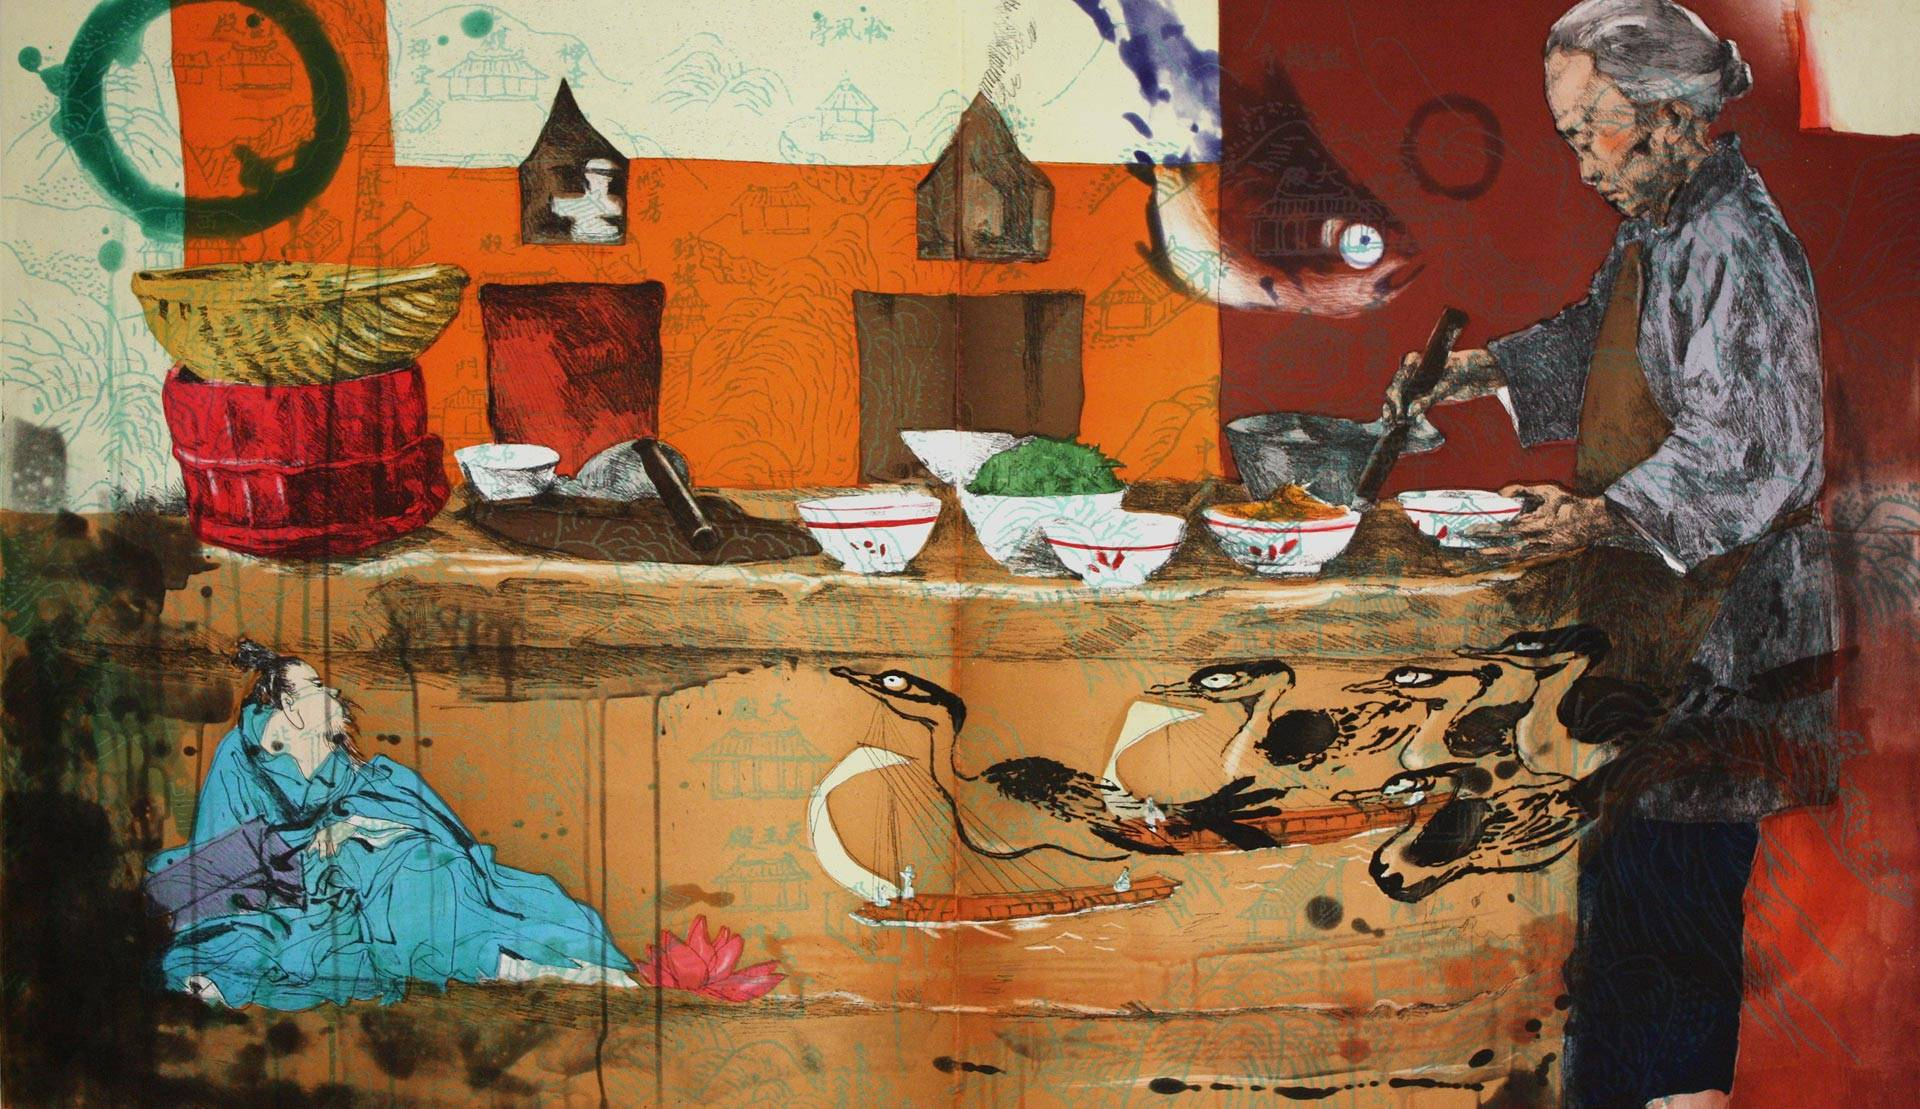 'Luzao (Stove)' (2008), by Hung Liu. It's one of the paintings that speak to the dignity of labor in 'We Who Work' at the Santa Cruz Museum of Art and History.  Photo: Courtesy of Hung Liu